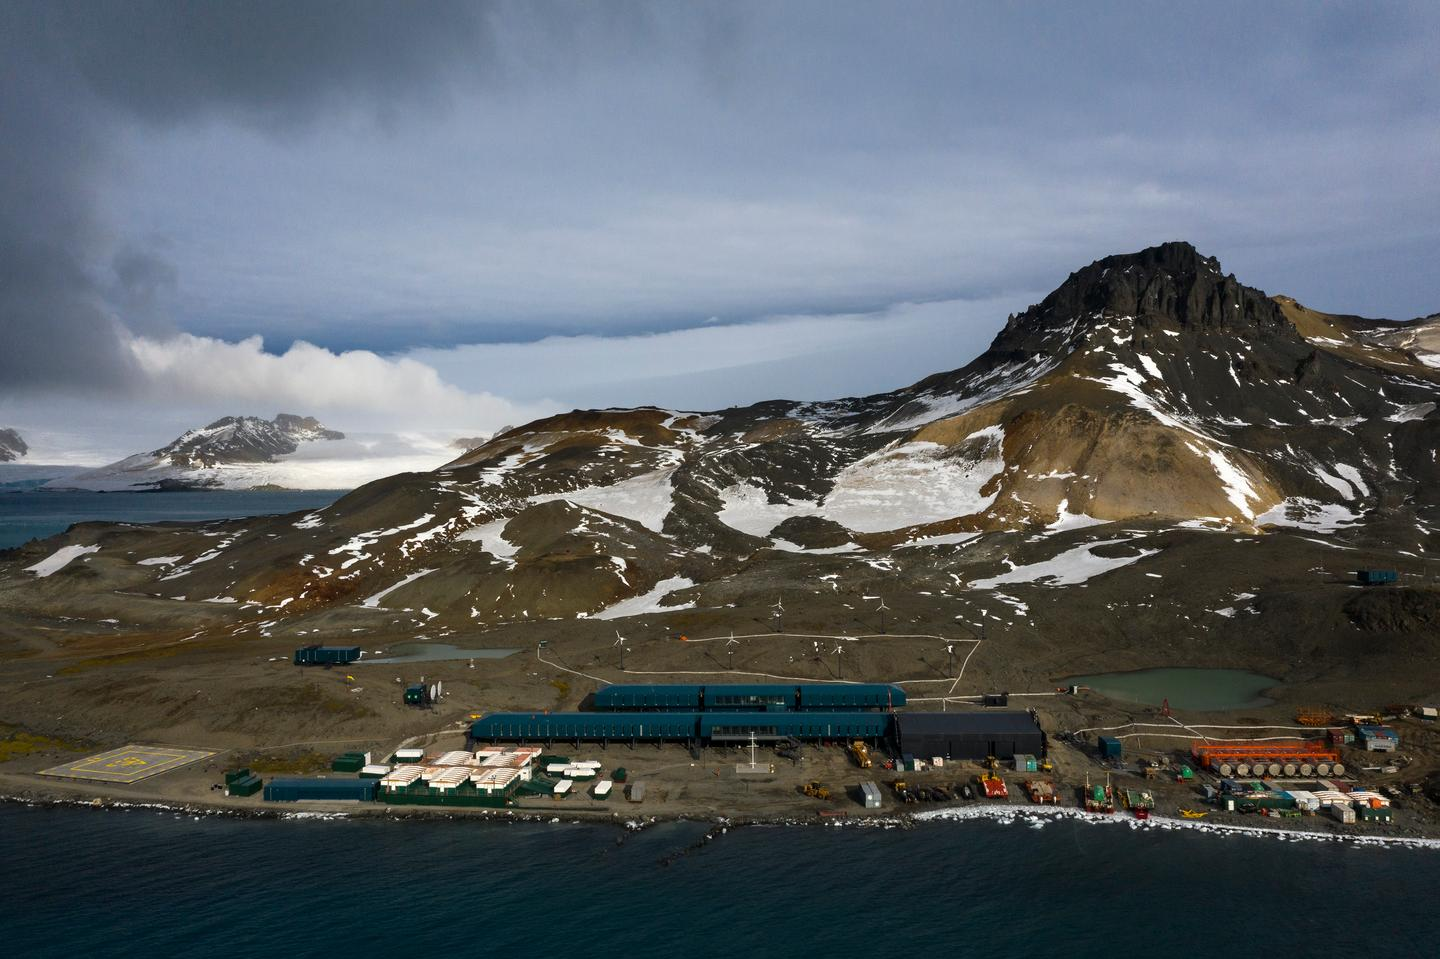 The Antarctic Station Comandante Ferraz is located on King George Island in the Keller Peninsula